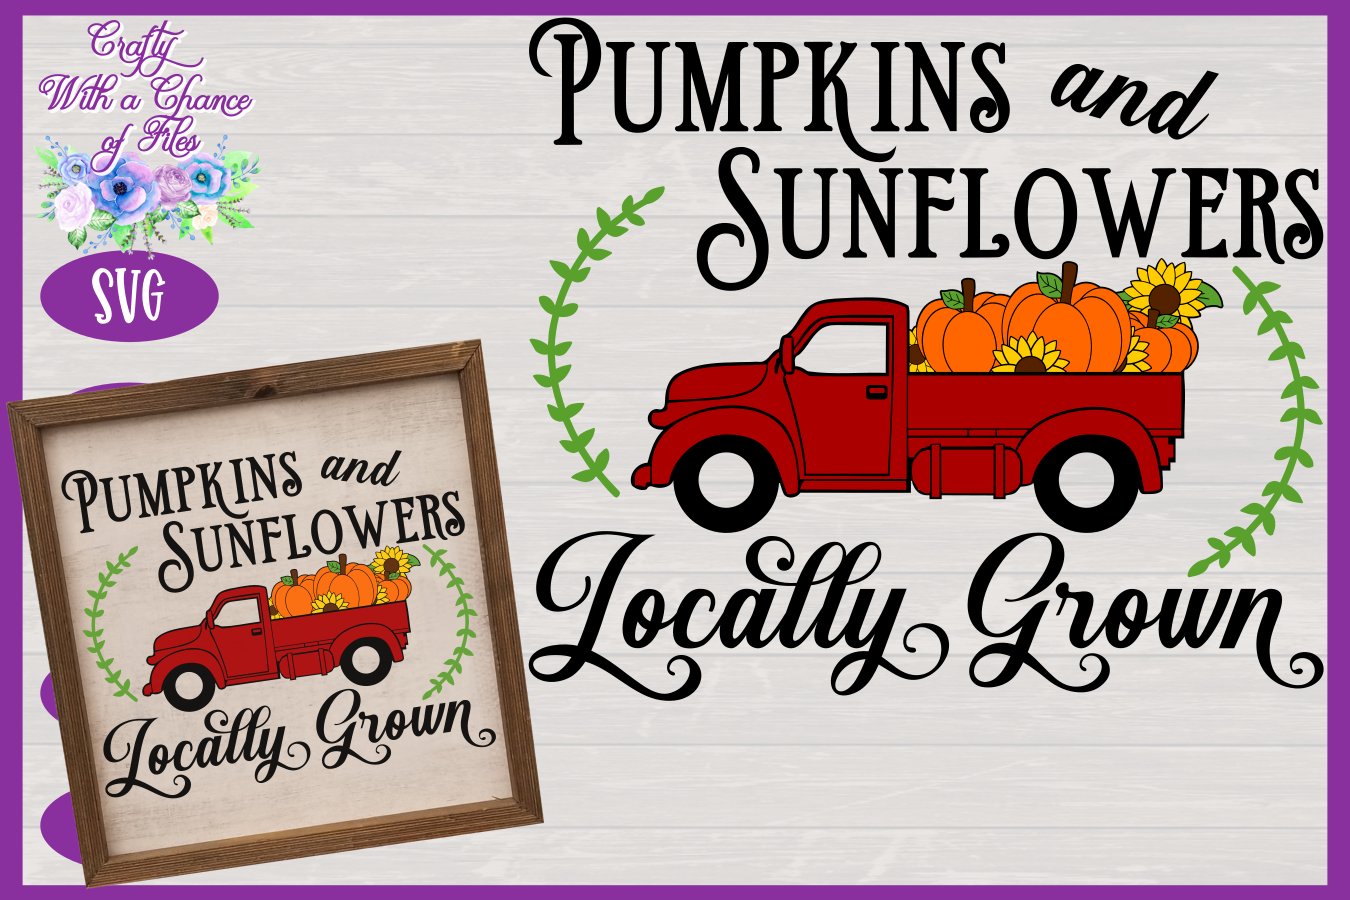 Pumpkins & Sunflowers Locally Grown SVG | Fall Truck SVG example image 1